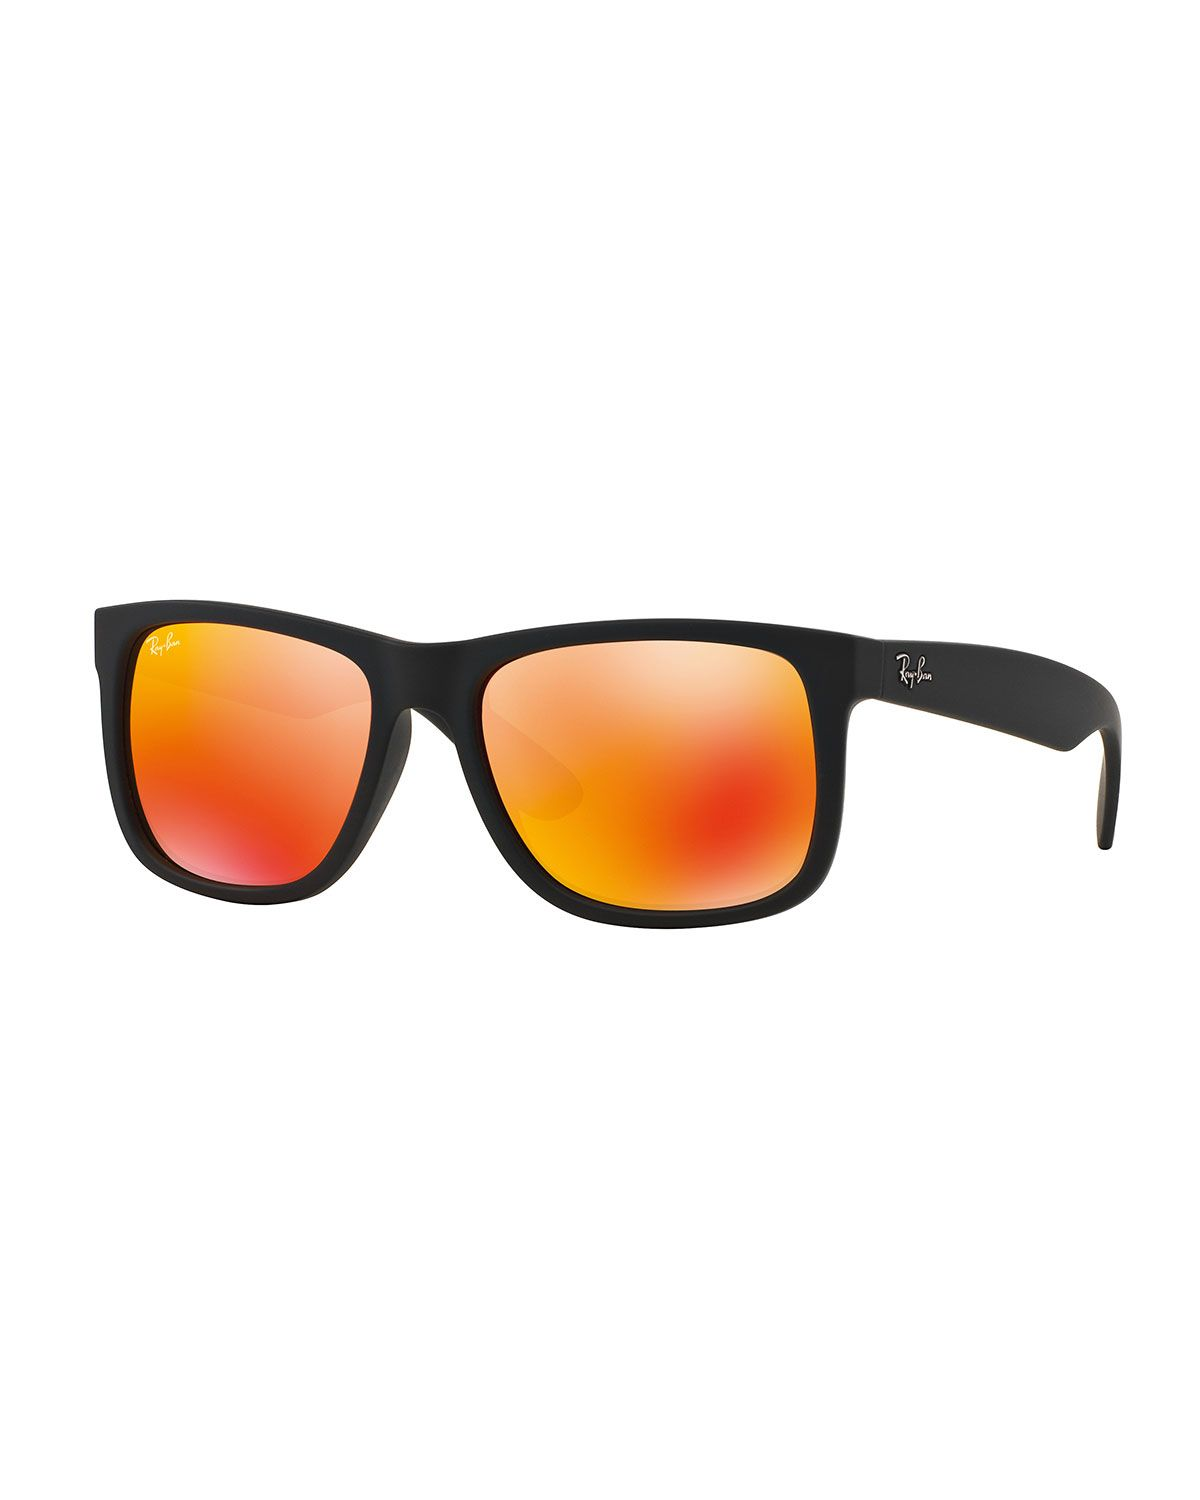 92db1d228a Flat-Top Plastic Sunglasses with Mirror Lenses